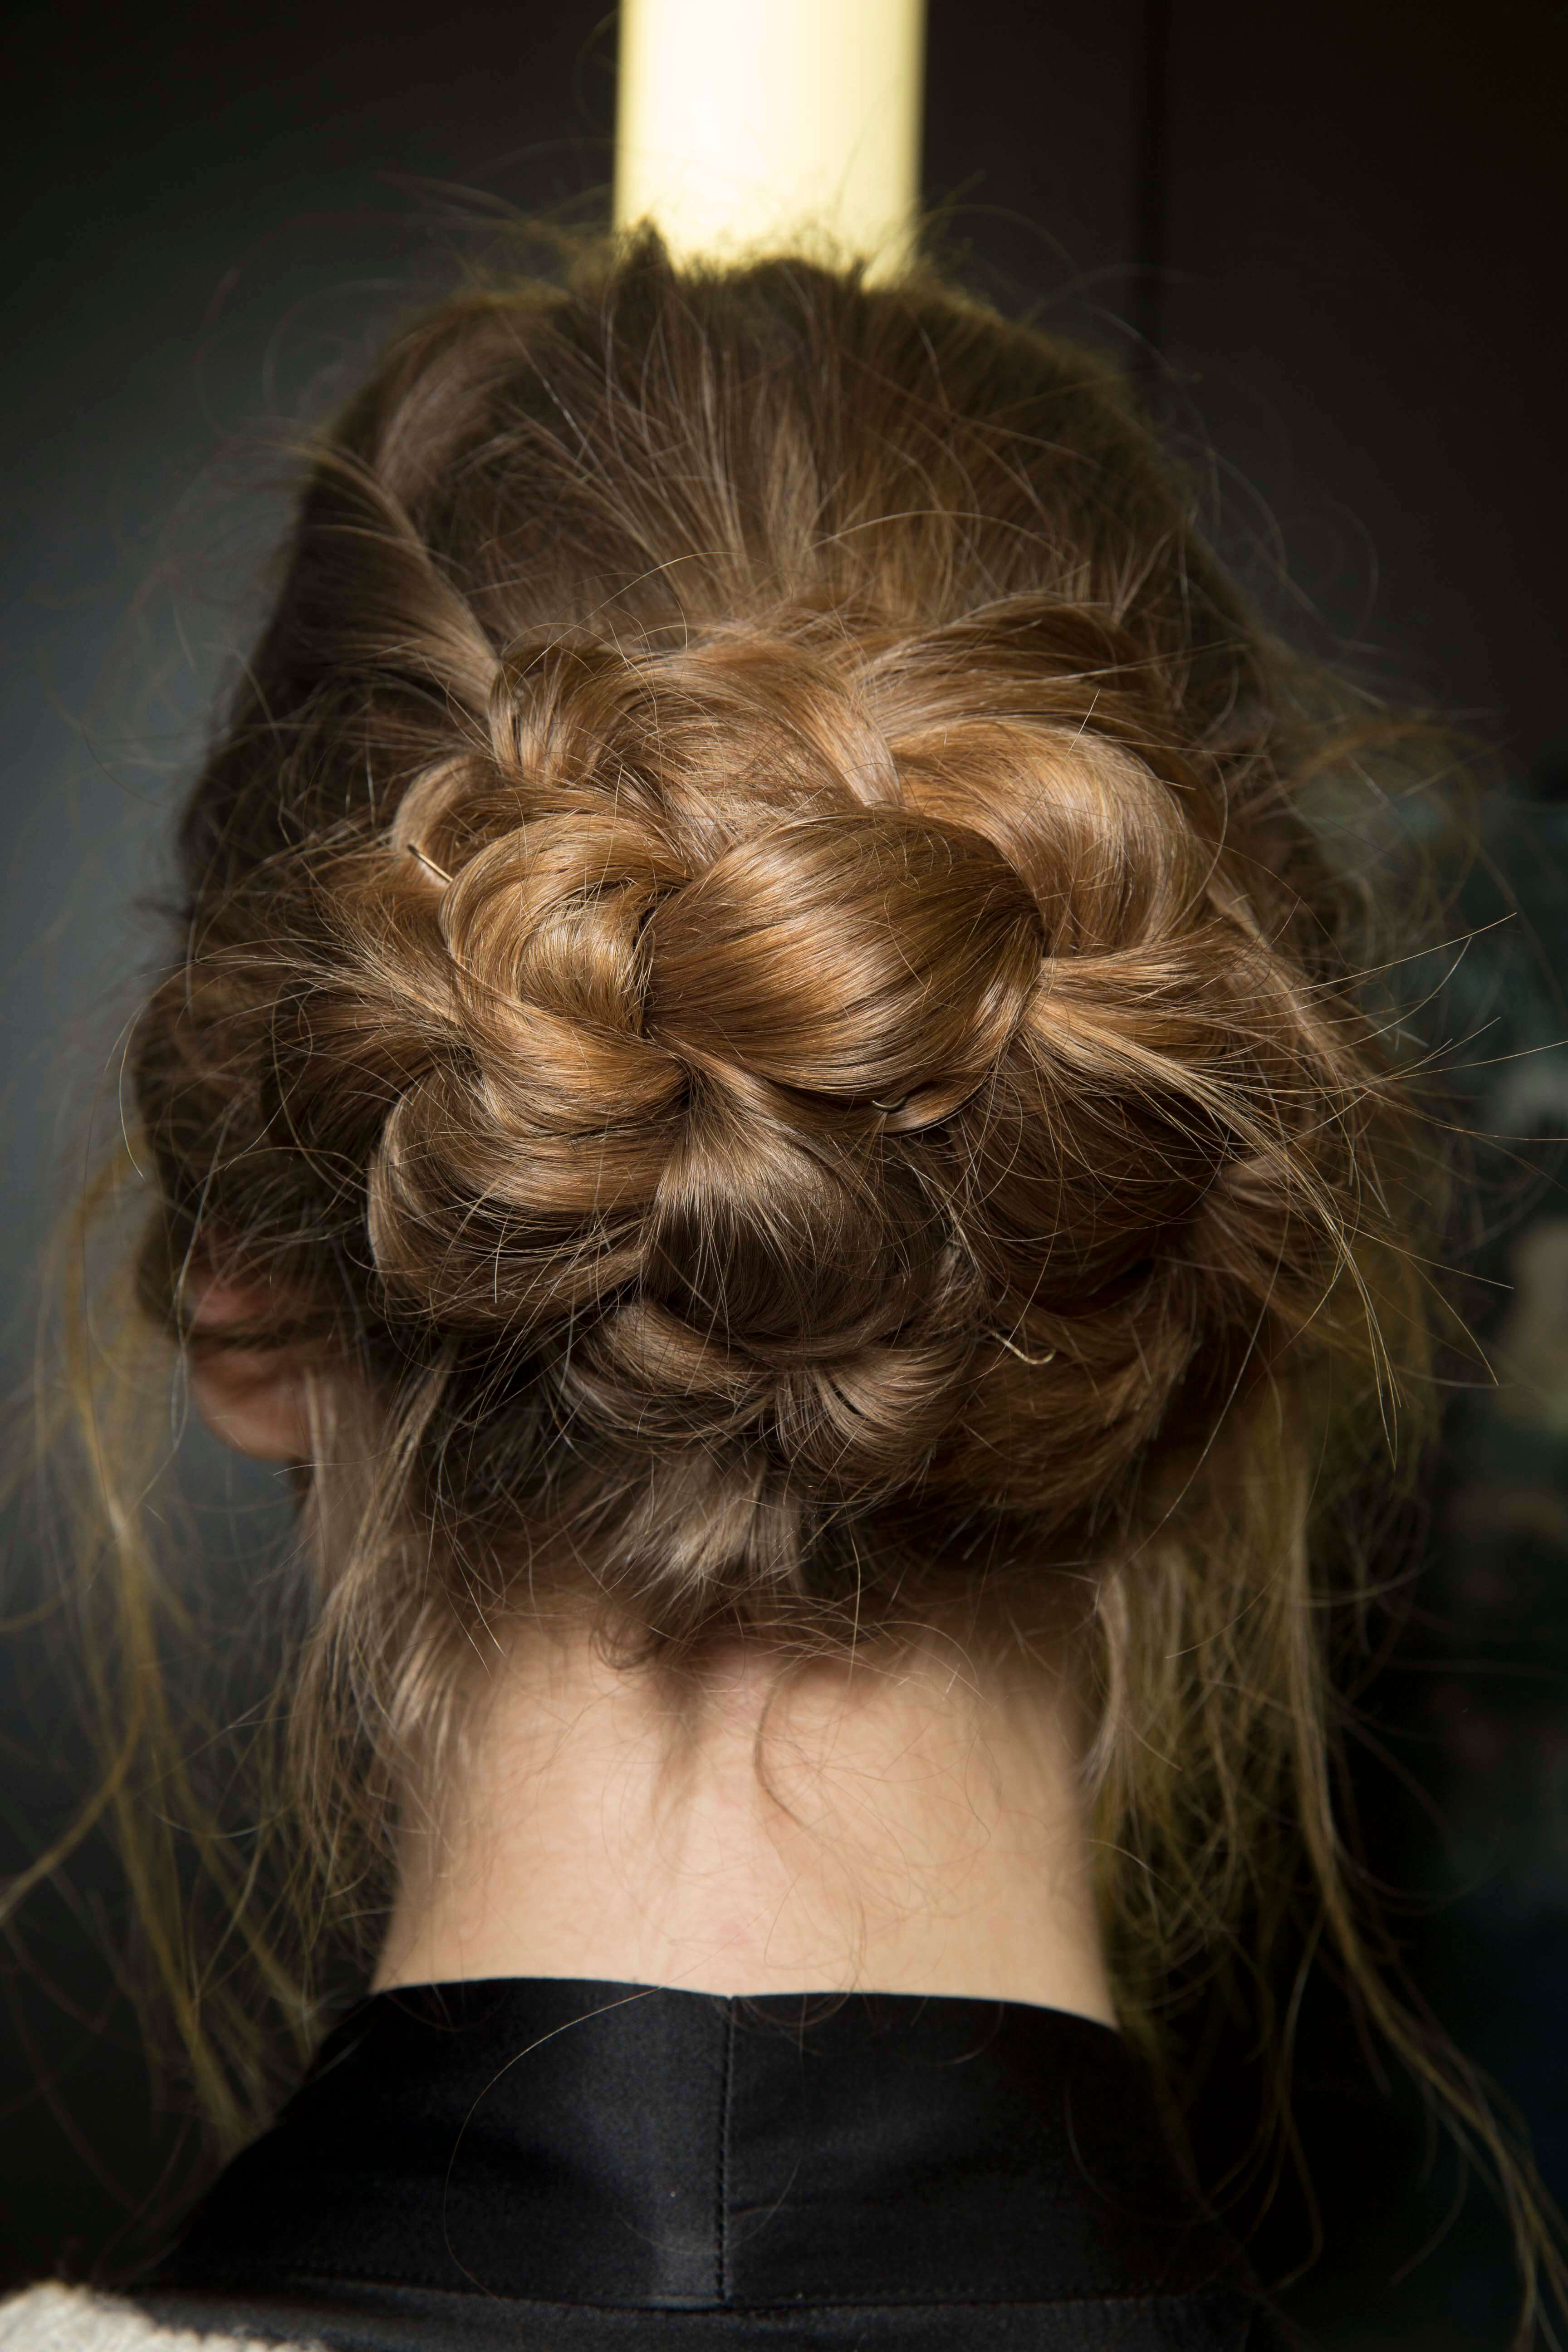 fancy hairstyles: low braided bun